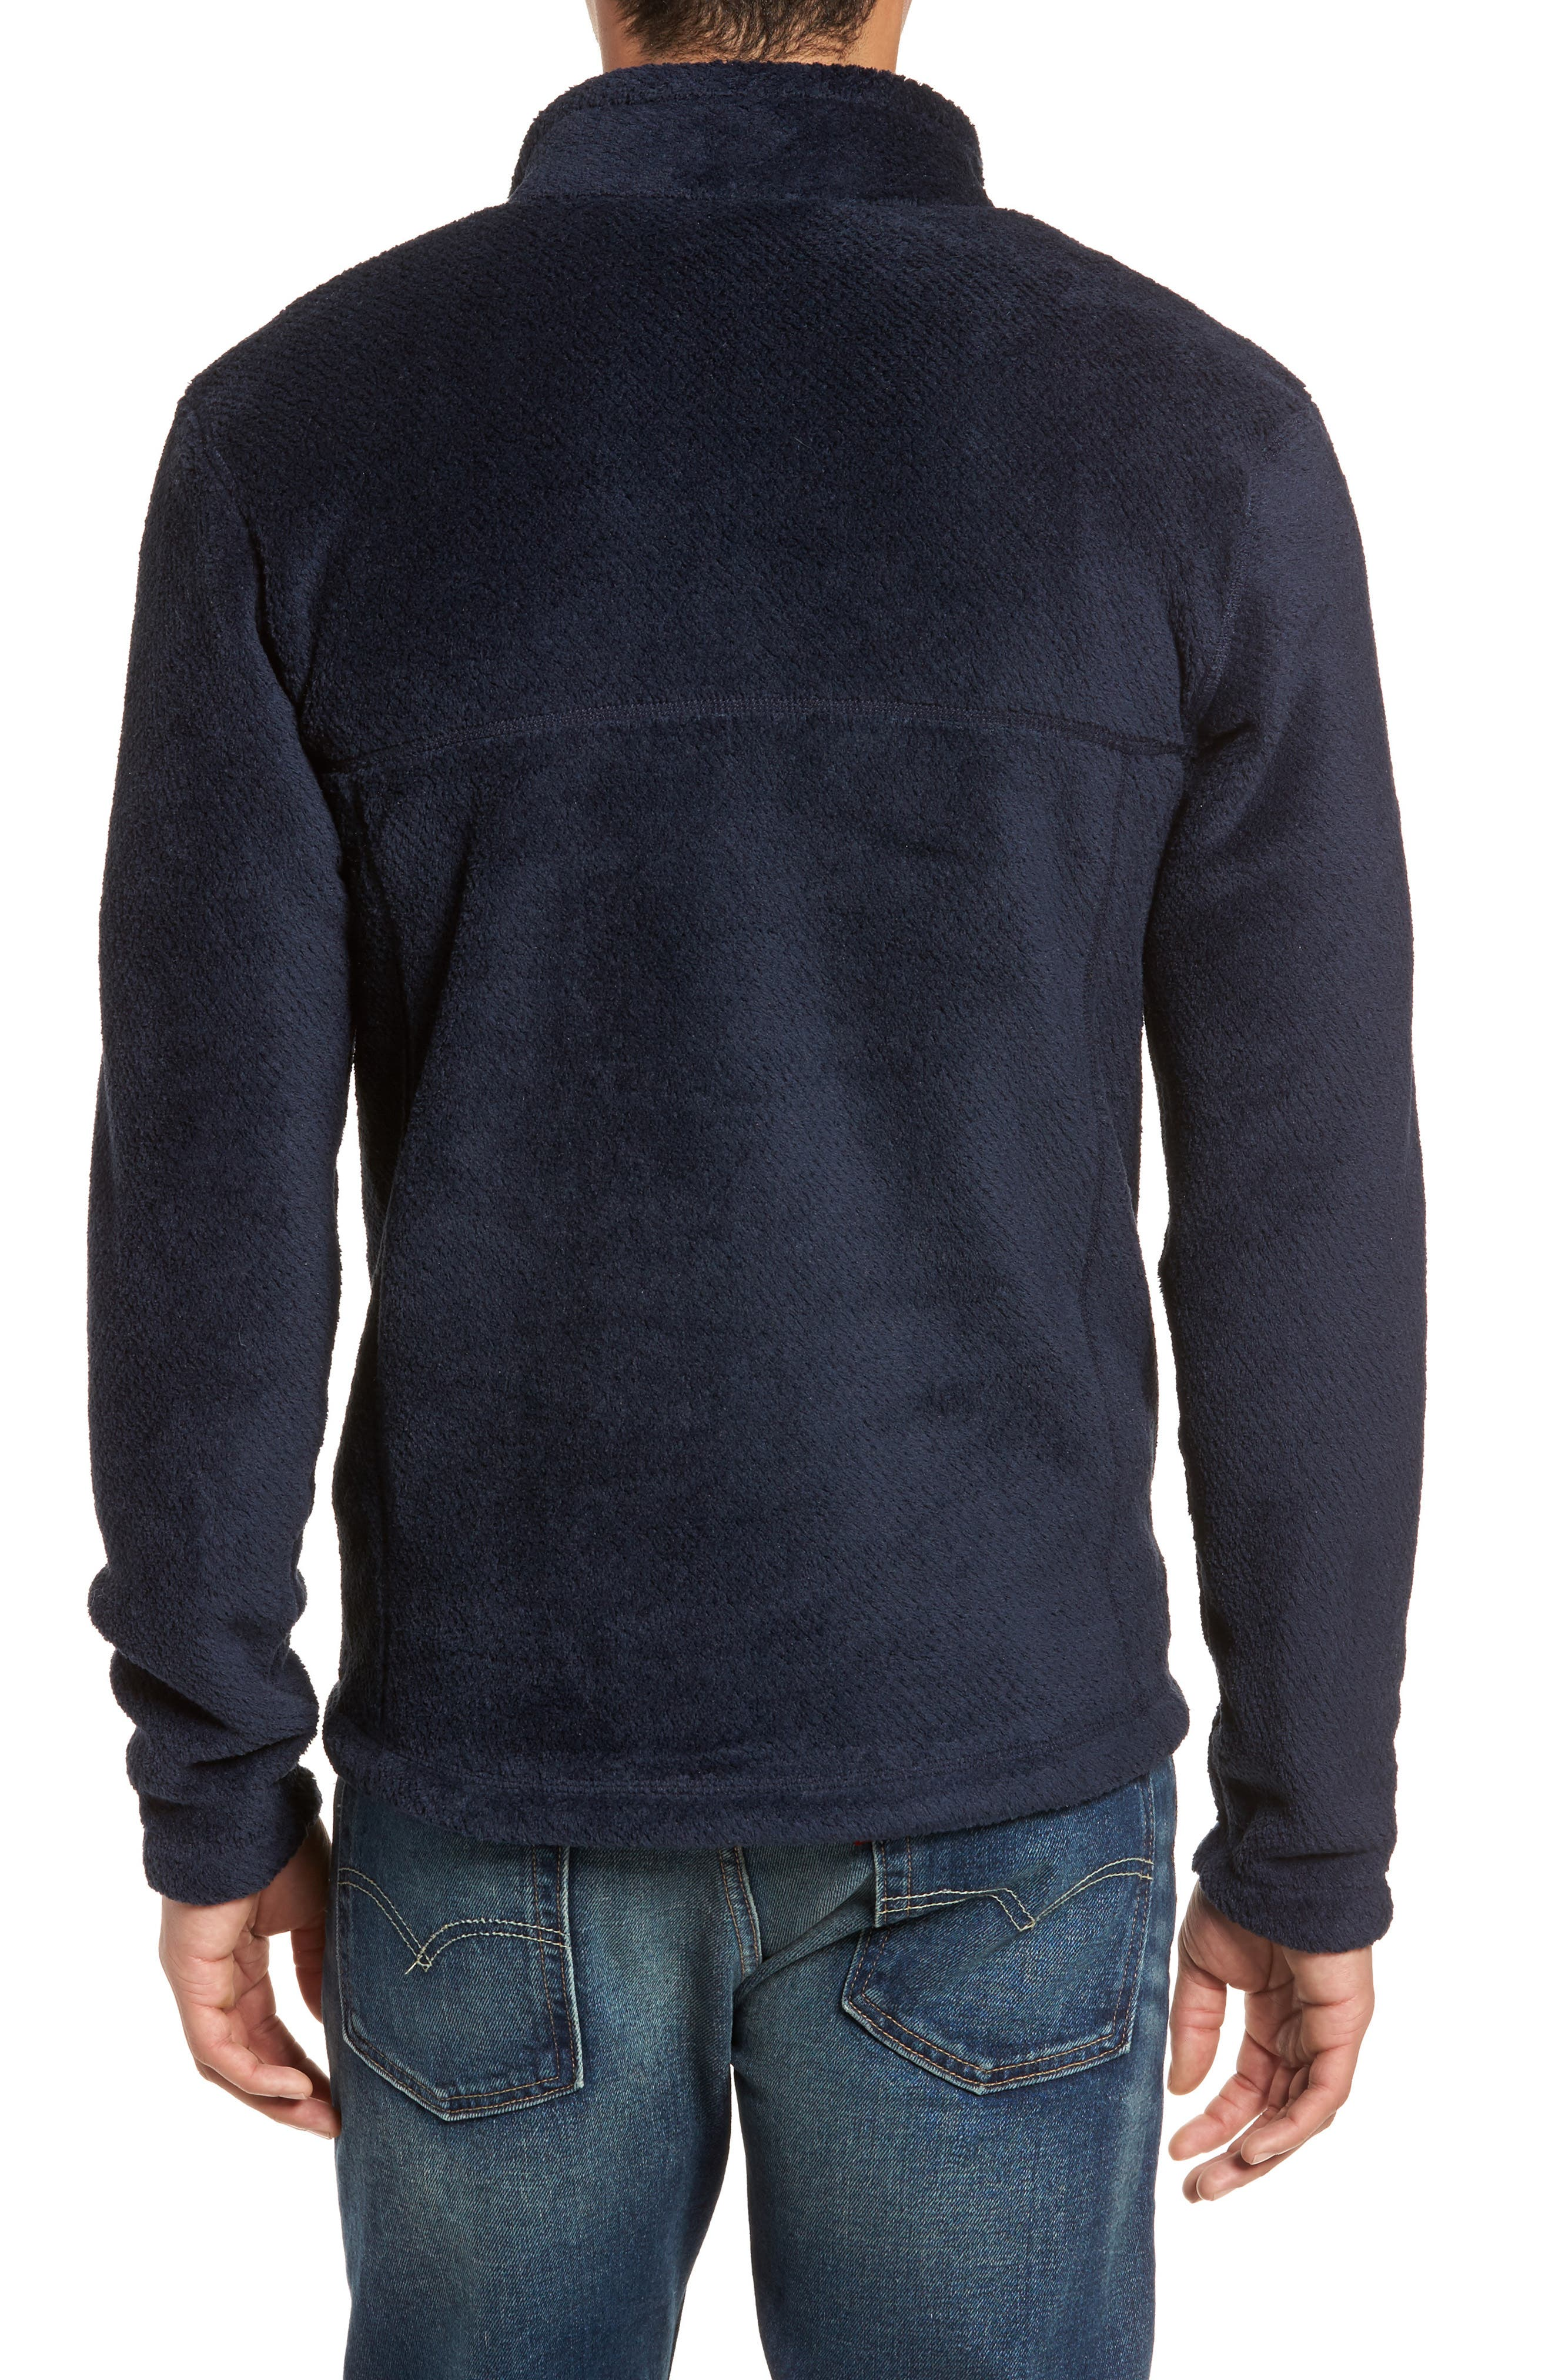 Re-Tool Snap-T<sup>®</sup> Pullover,                             Alternate thumbnail 2, color,                             Navy Blue X-Dye